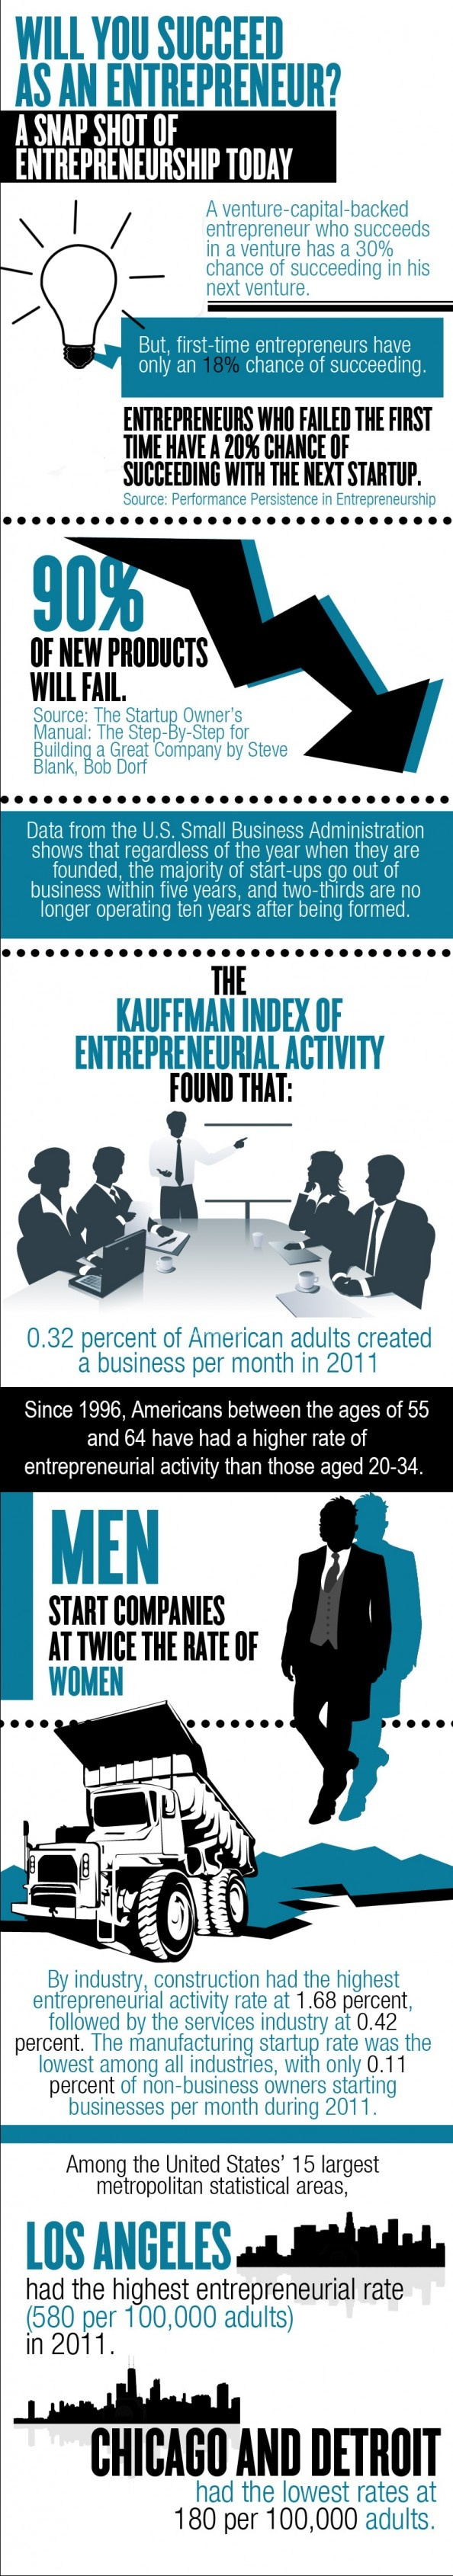 will you succeed as an entrepreneur